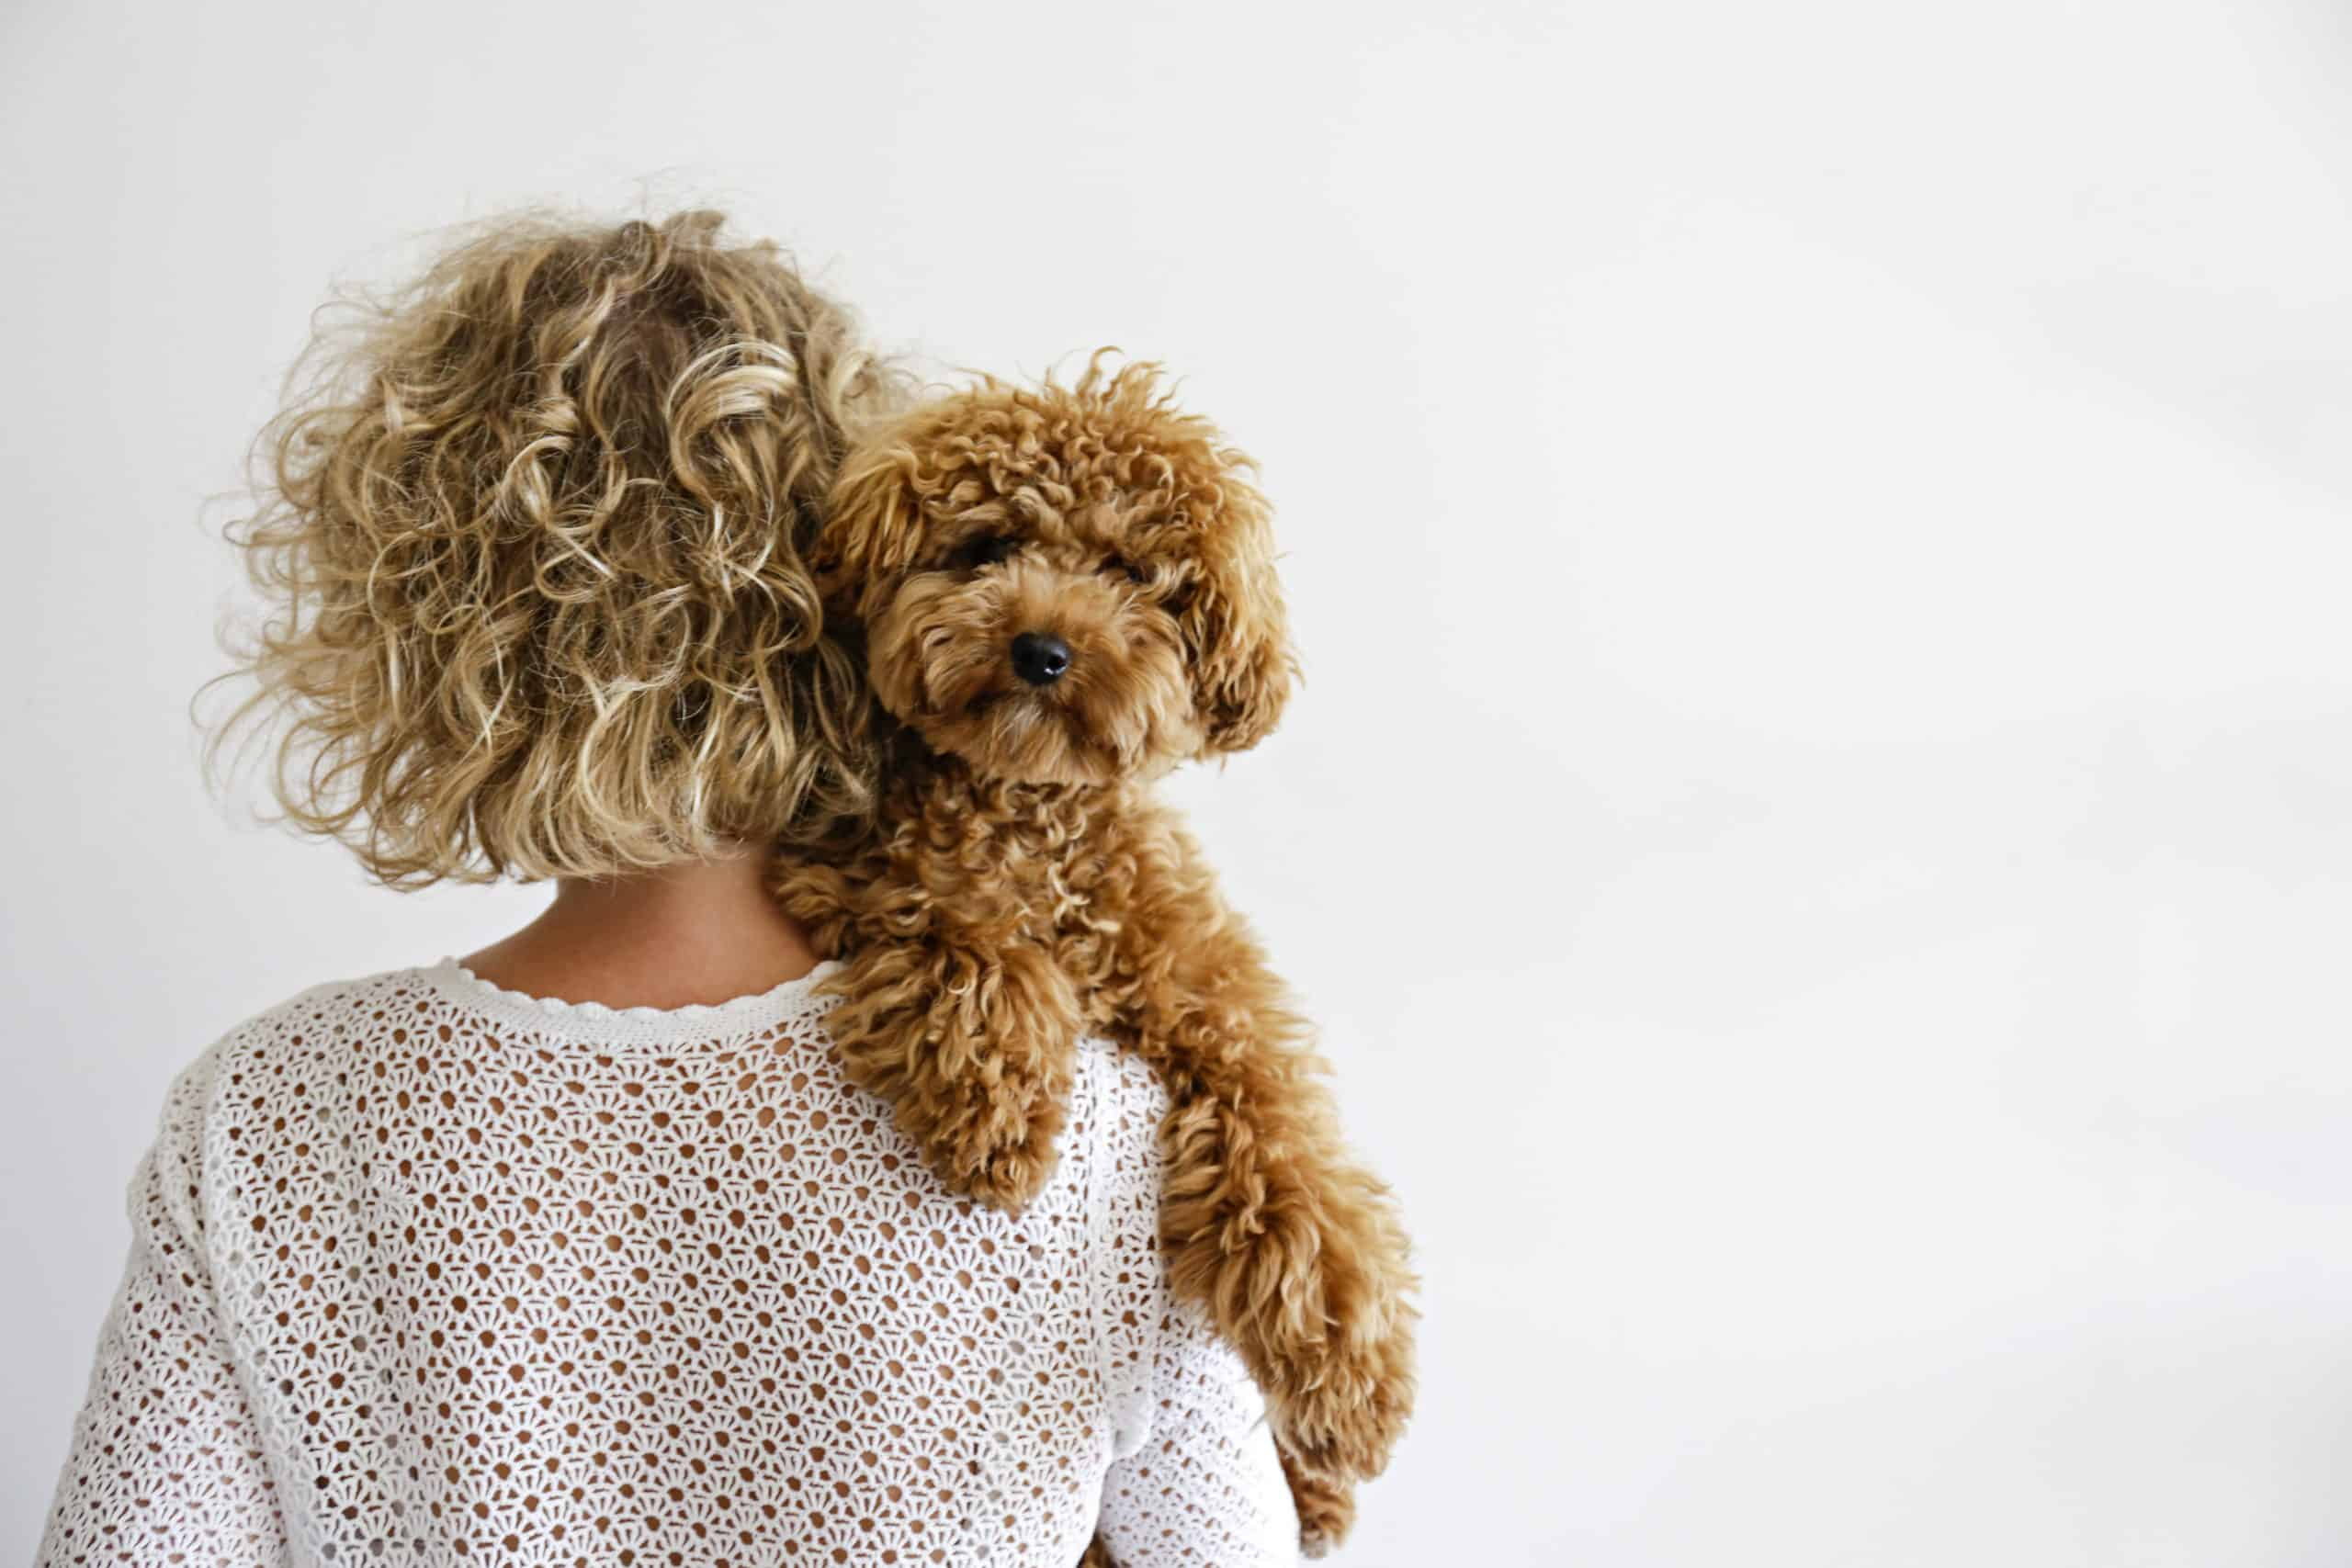 Woman with curly hair cuddles poodle mix puppy. Want to understand your (potential) partner's character? The dog breed he chooses reveals key personality traits.